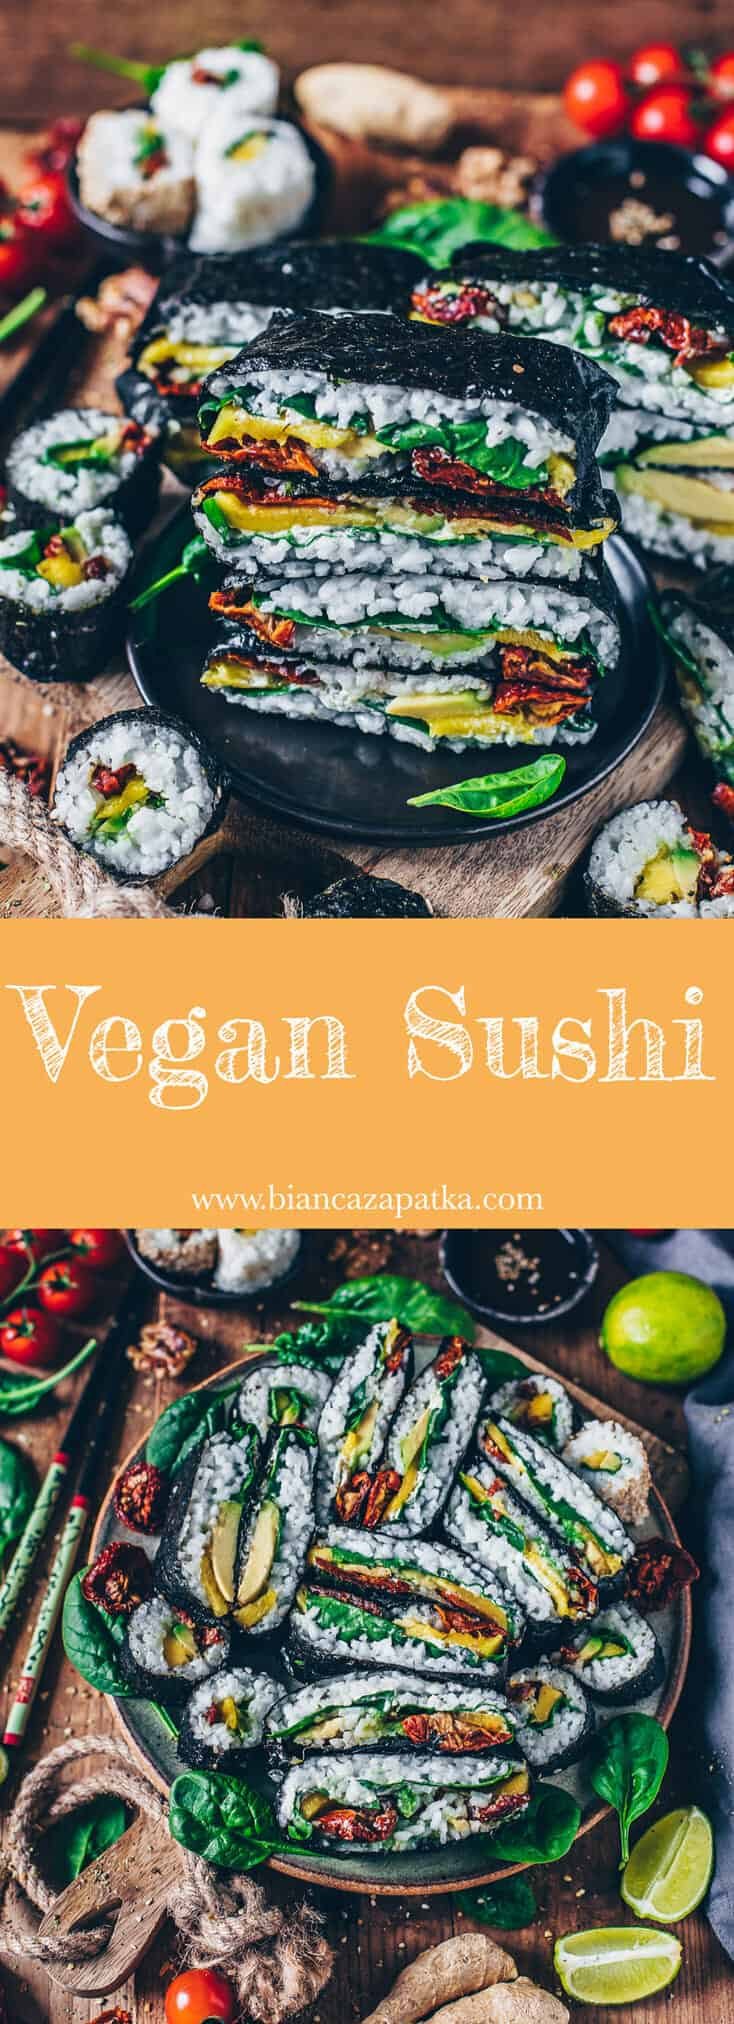 Vegan sushi made from plant-based ingredients. This recipe is gluten-free, healthy, delicious and you can make it in many different ways. The sushi sandwiches (Onigirazu) are also great as a grab and go snack.